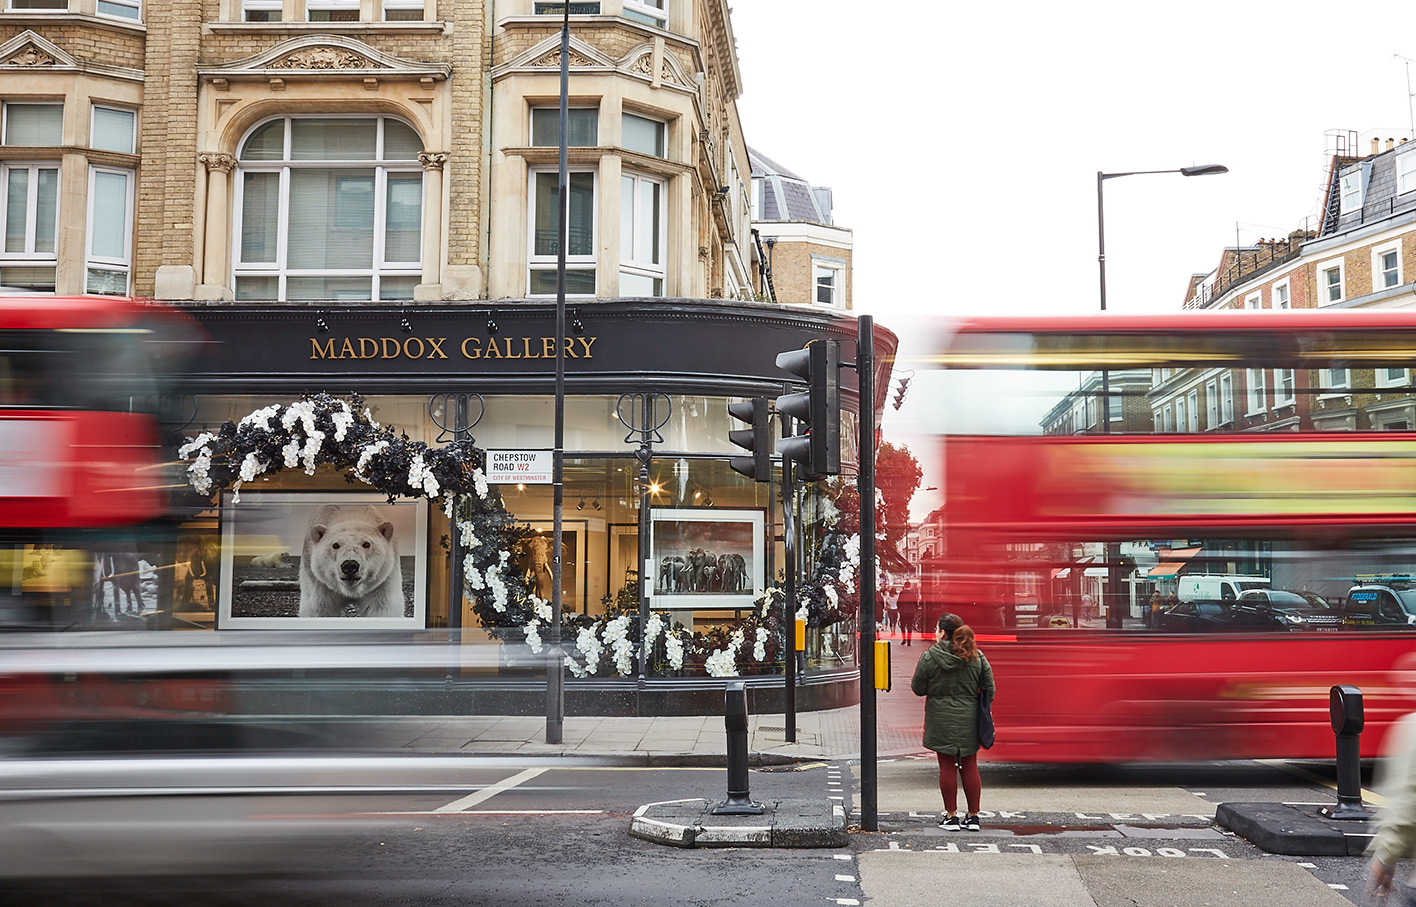 Aldworth James & Bond | Maddox Gallery - Westbourne Grove | Exterior